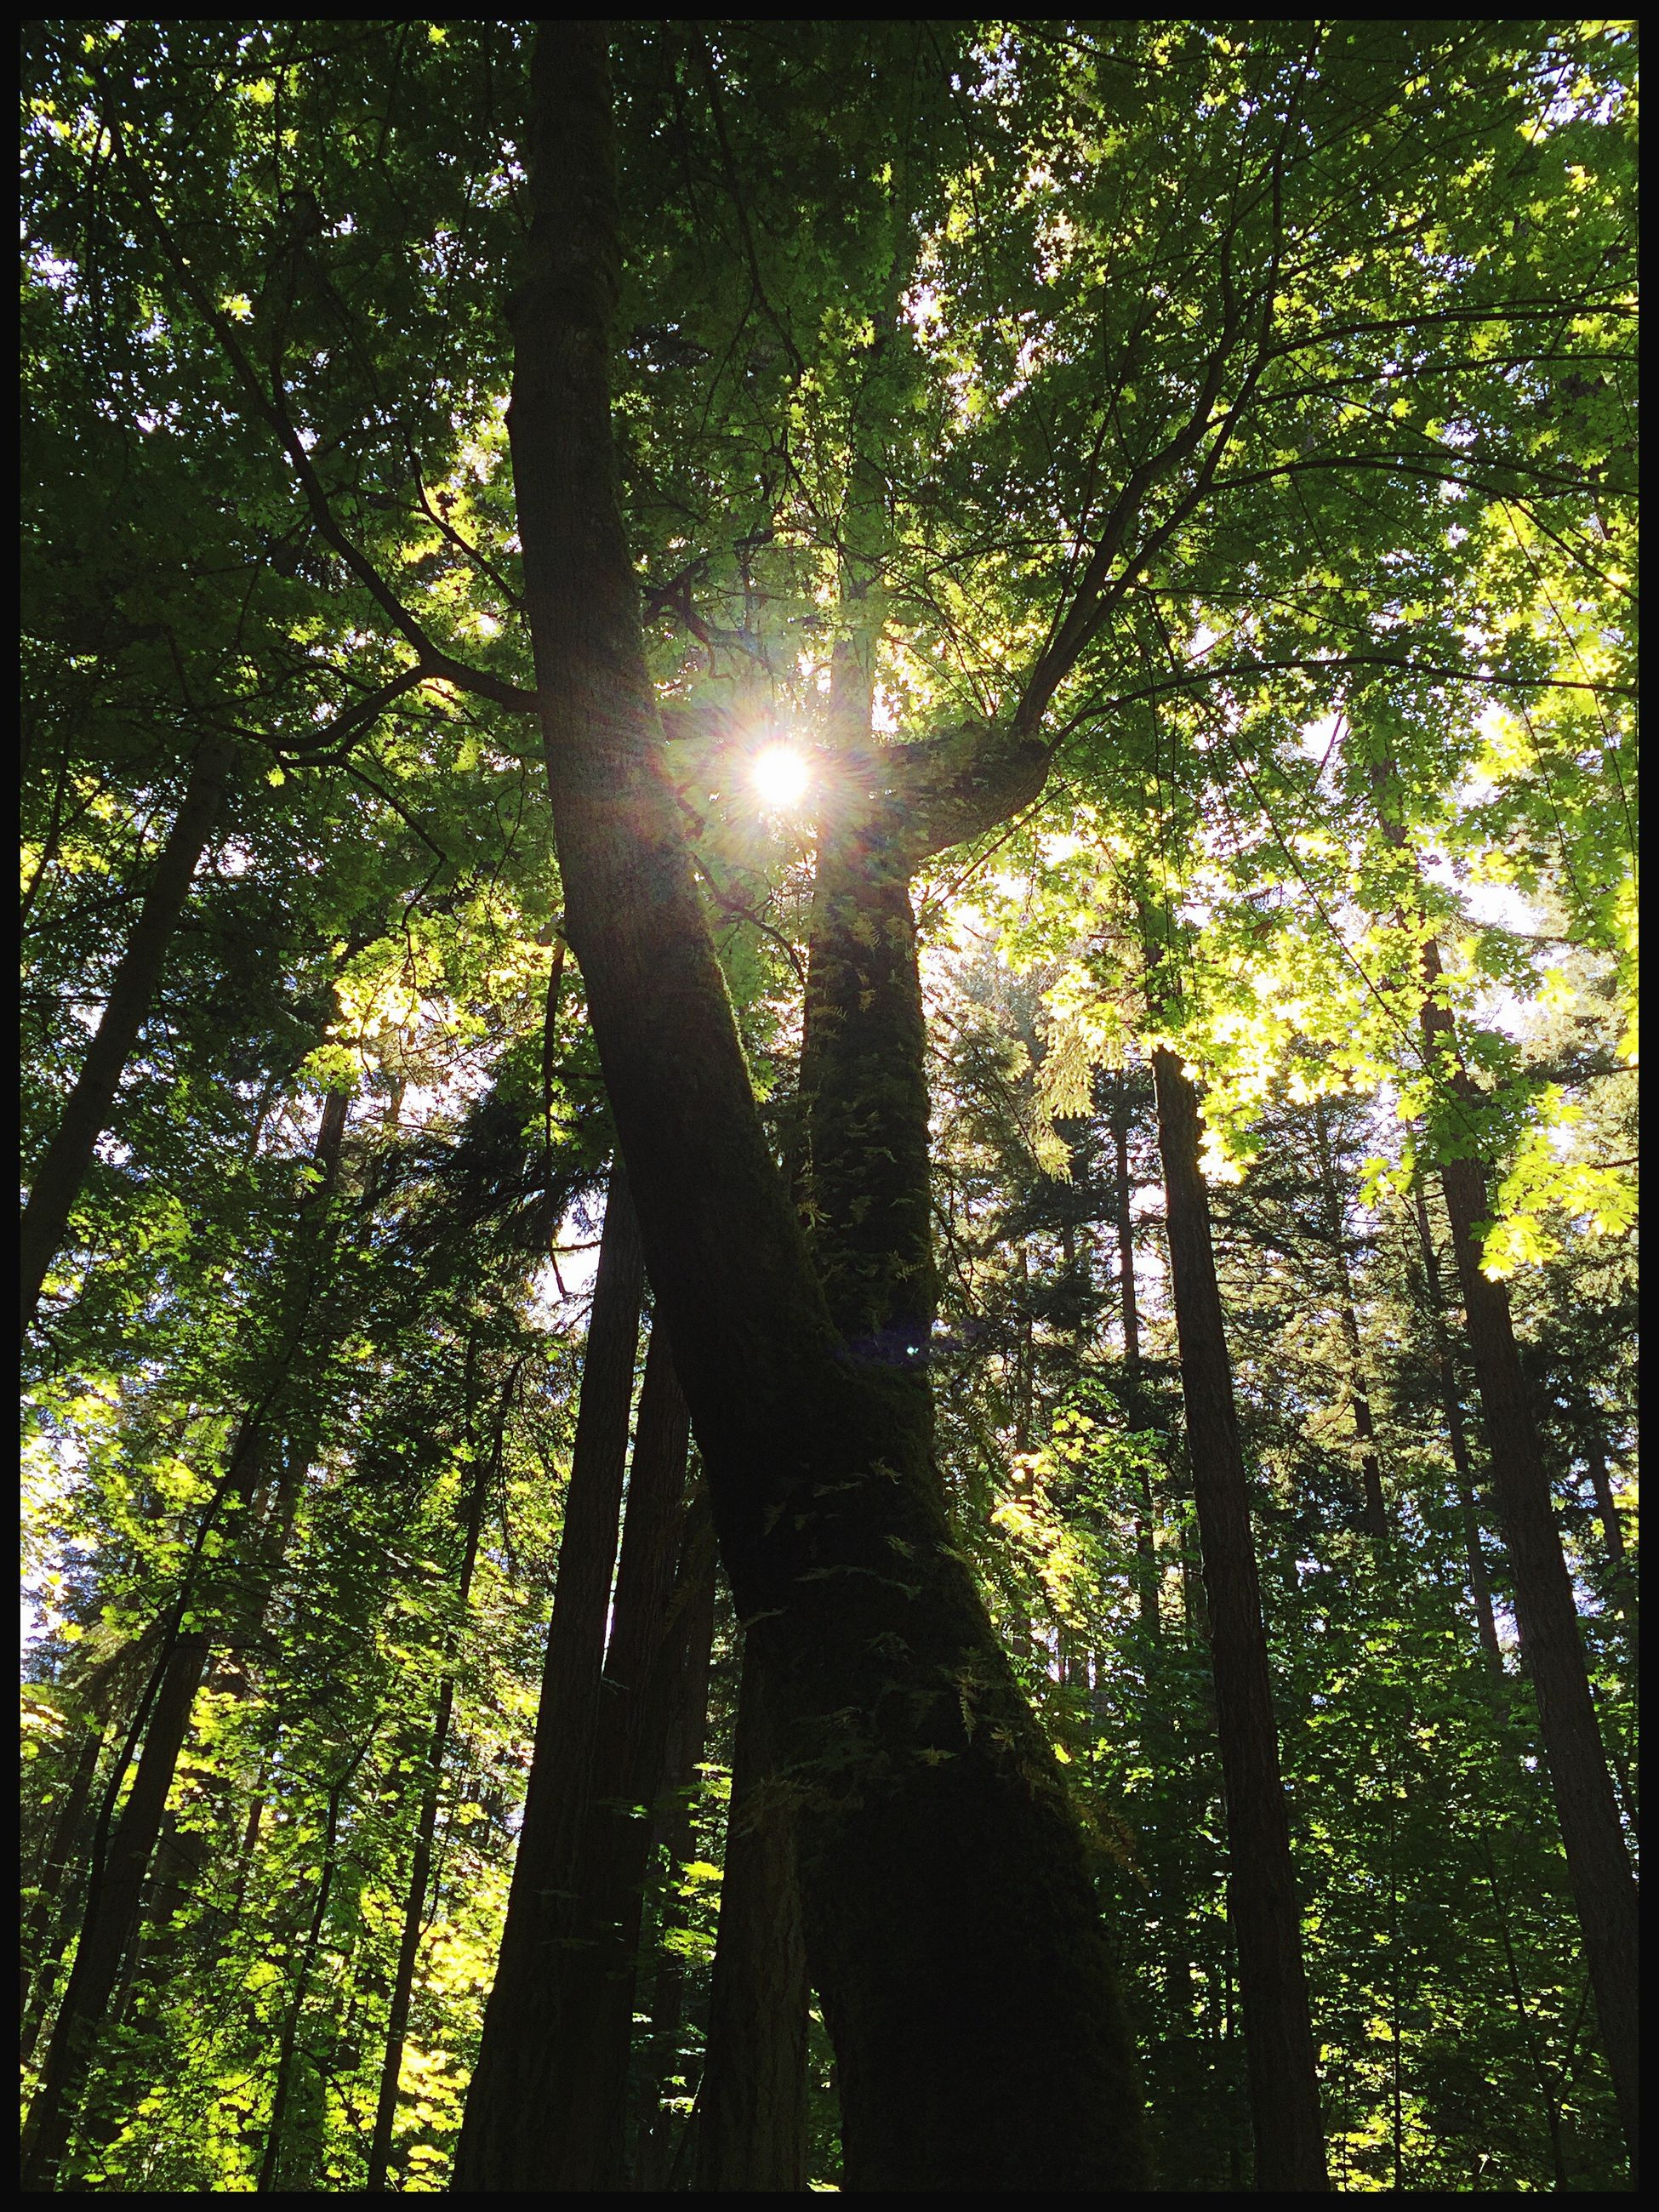 tree, forest, tree trunk, nature, sunbeam, sunlight, growth, low angle view, beauty in nature, tranquility, lens flare, day, outdoors, tranquil scene, no people, sun, green color, scenics, branch, bamboo - plant